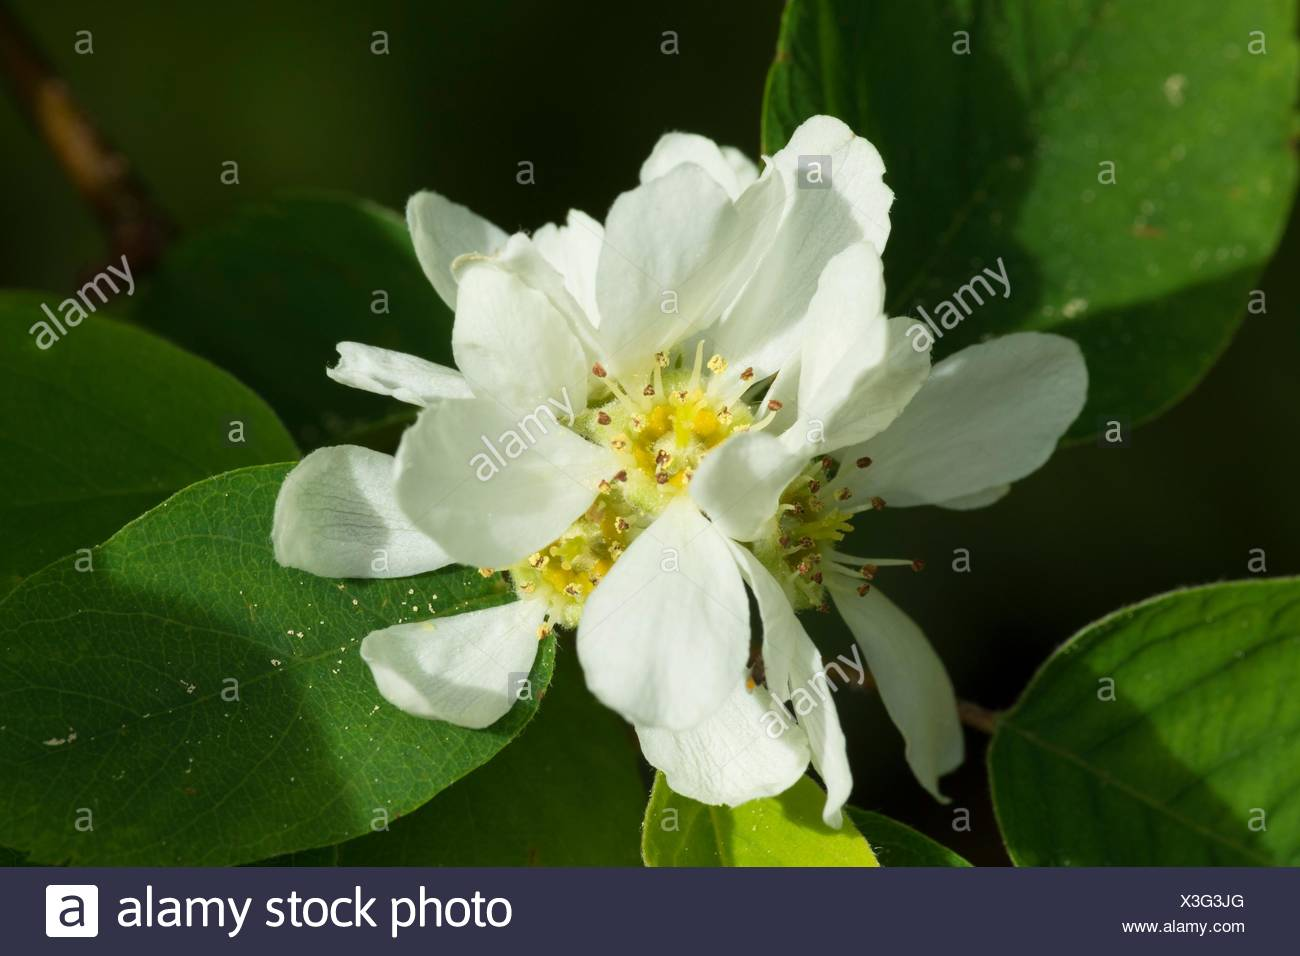 Serviceberry, New River Area of Critical Environmental Concern, Coos Bay Bureau of Land Management District, Oregon. - Stock Image